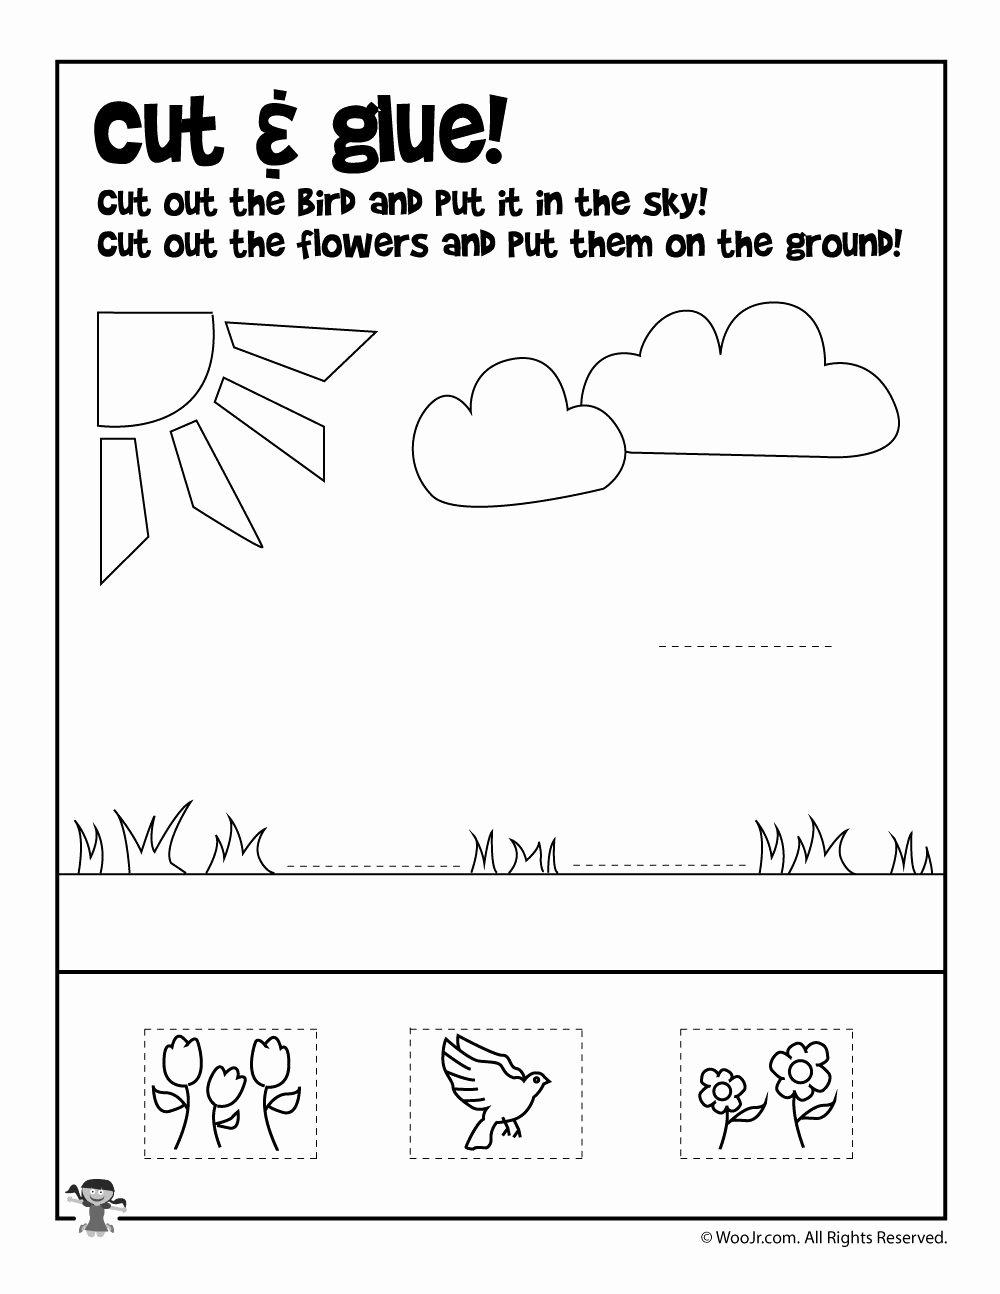 Kindergarten Worksheets Cut and Paste Inspirational Summer Preschool Worksheets Cut and Glue Free Math Telling